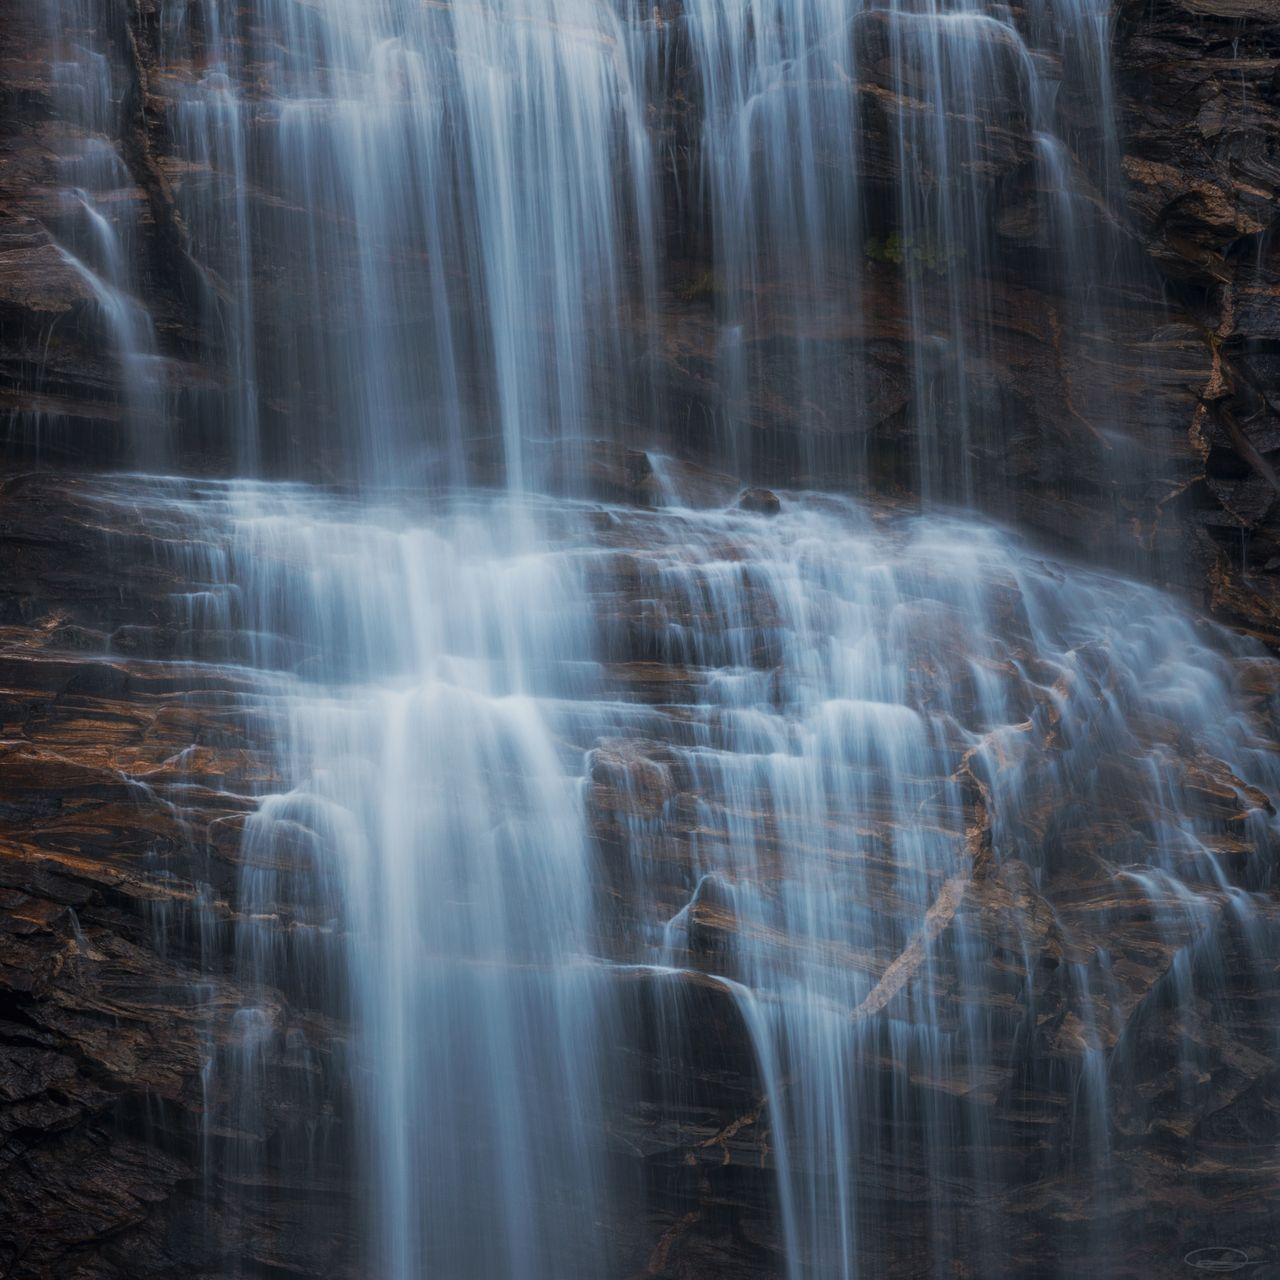 Intimate Landscape Photography - Waterfalls and Streams